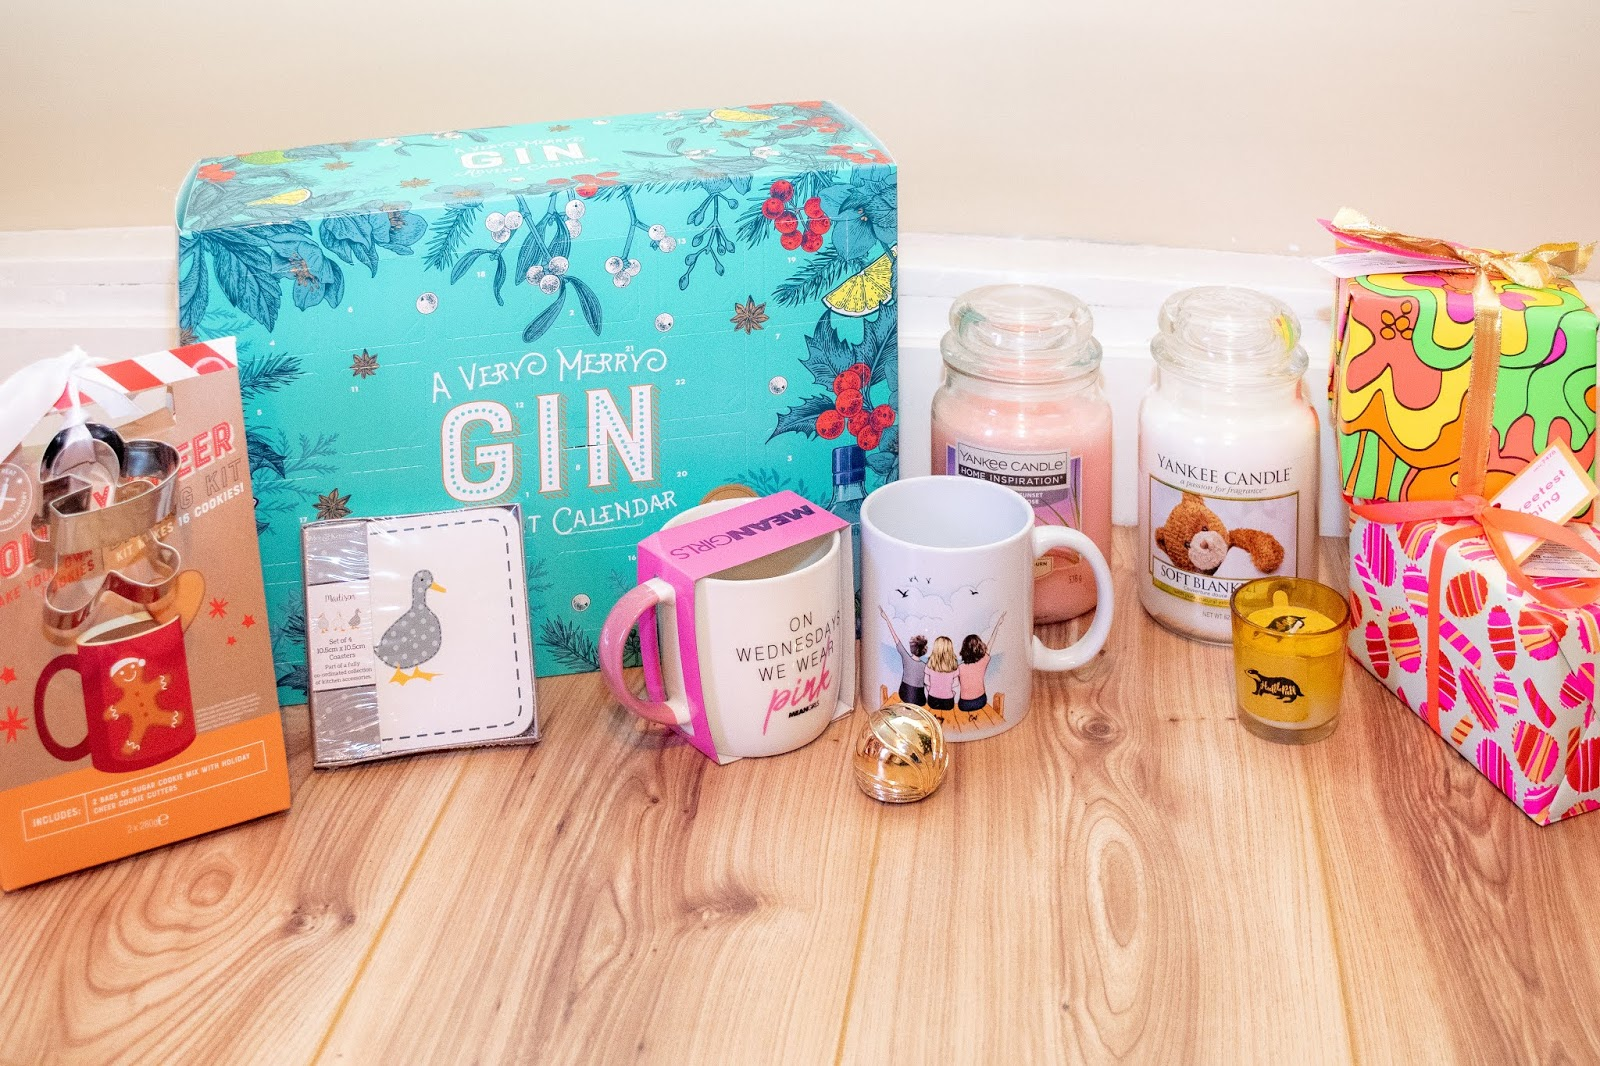 Food and home related gifts together: gin advent calendar, duck coasters, two mugs, a gingerbread baking kit, candles, lush sets.